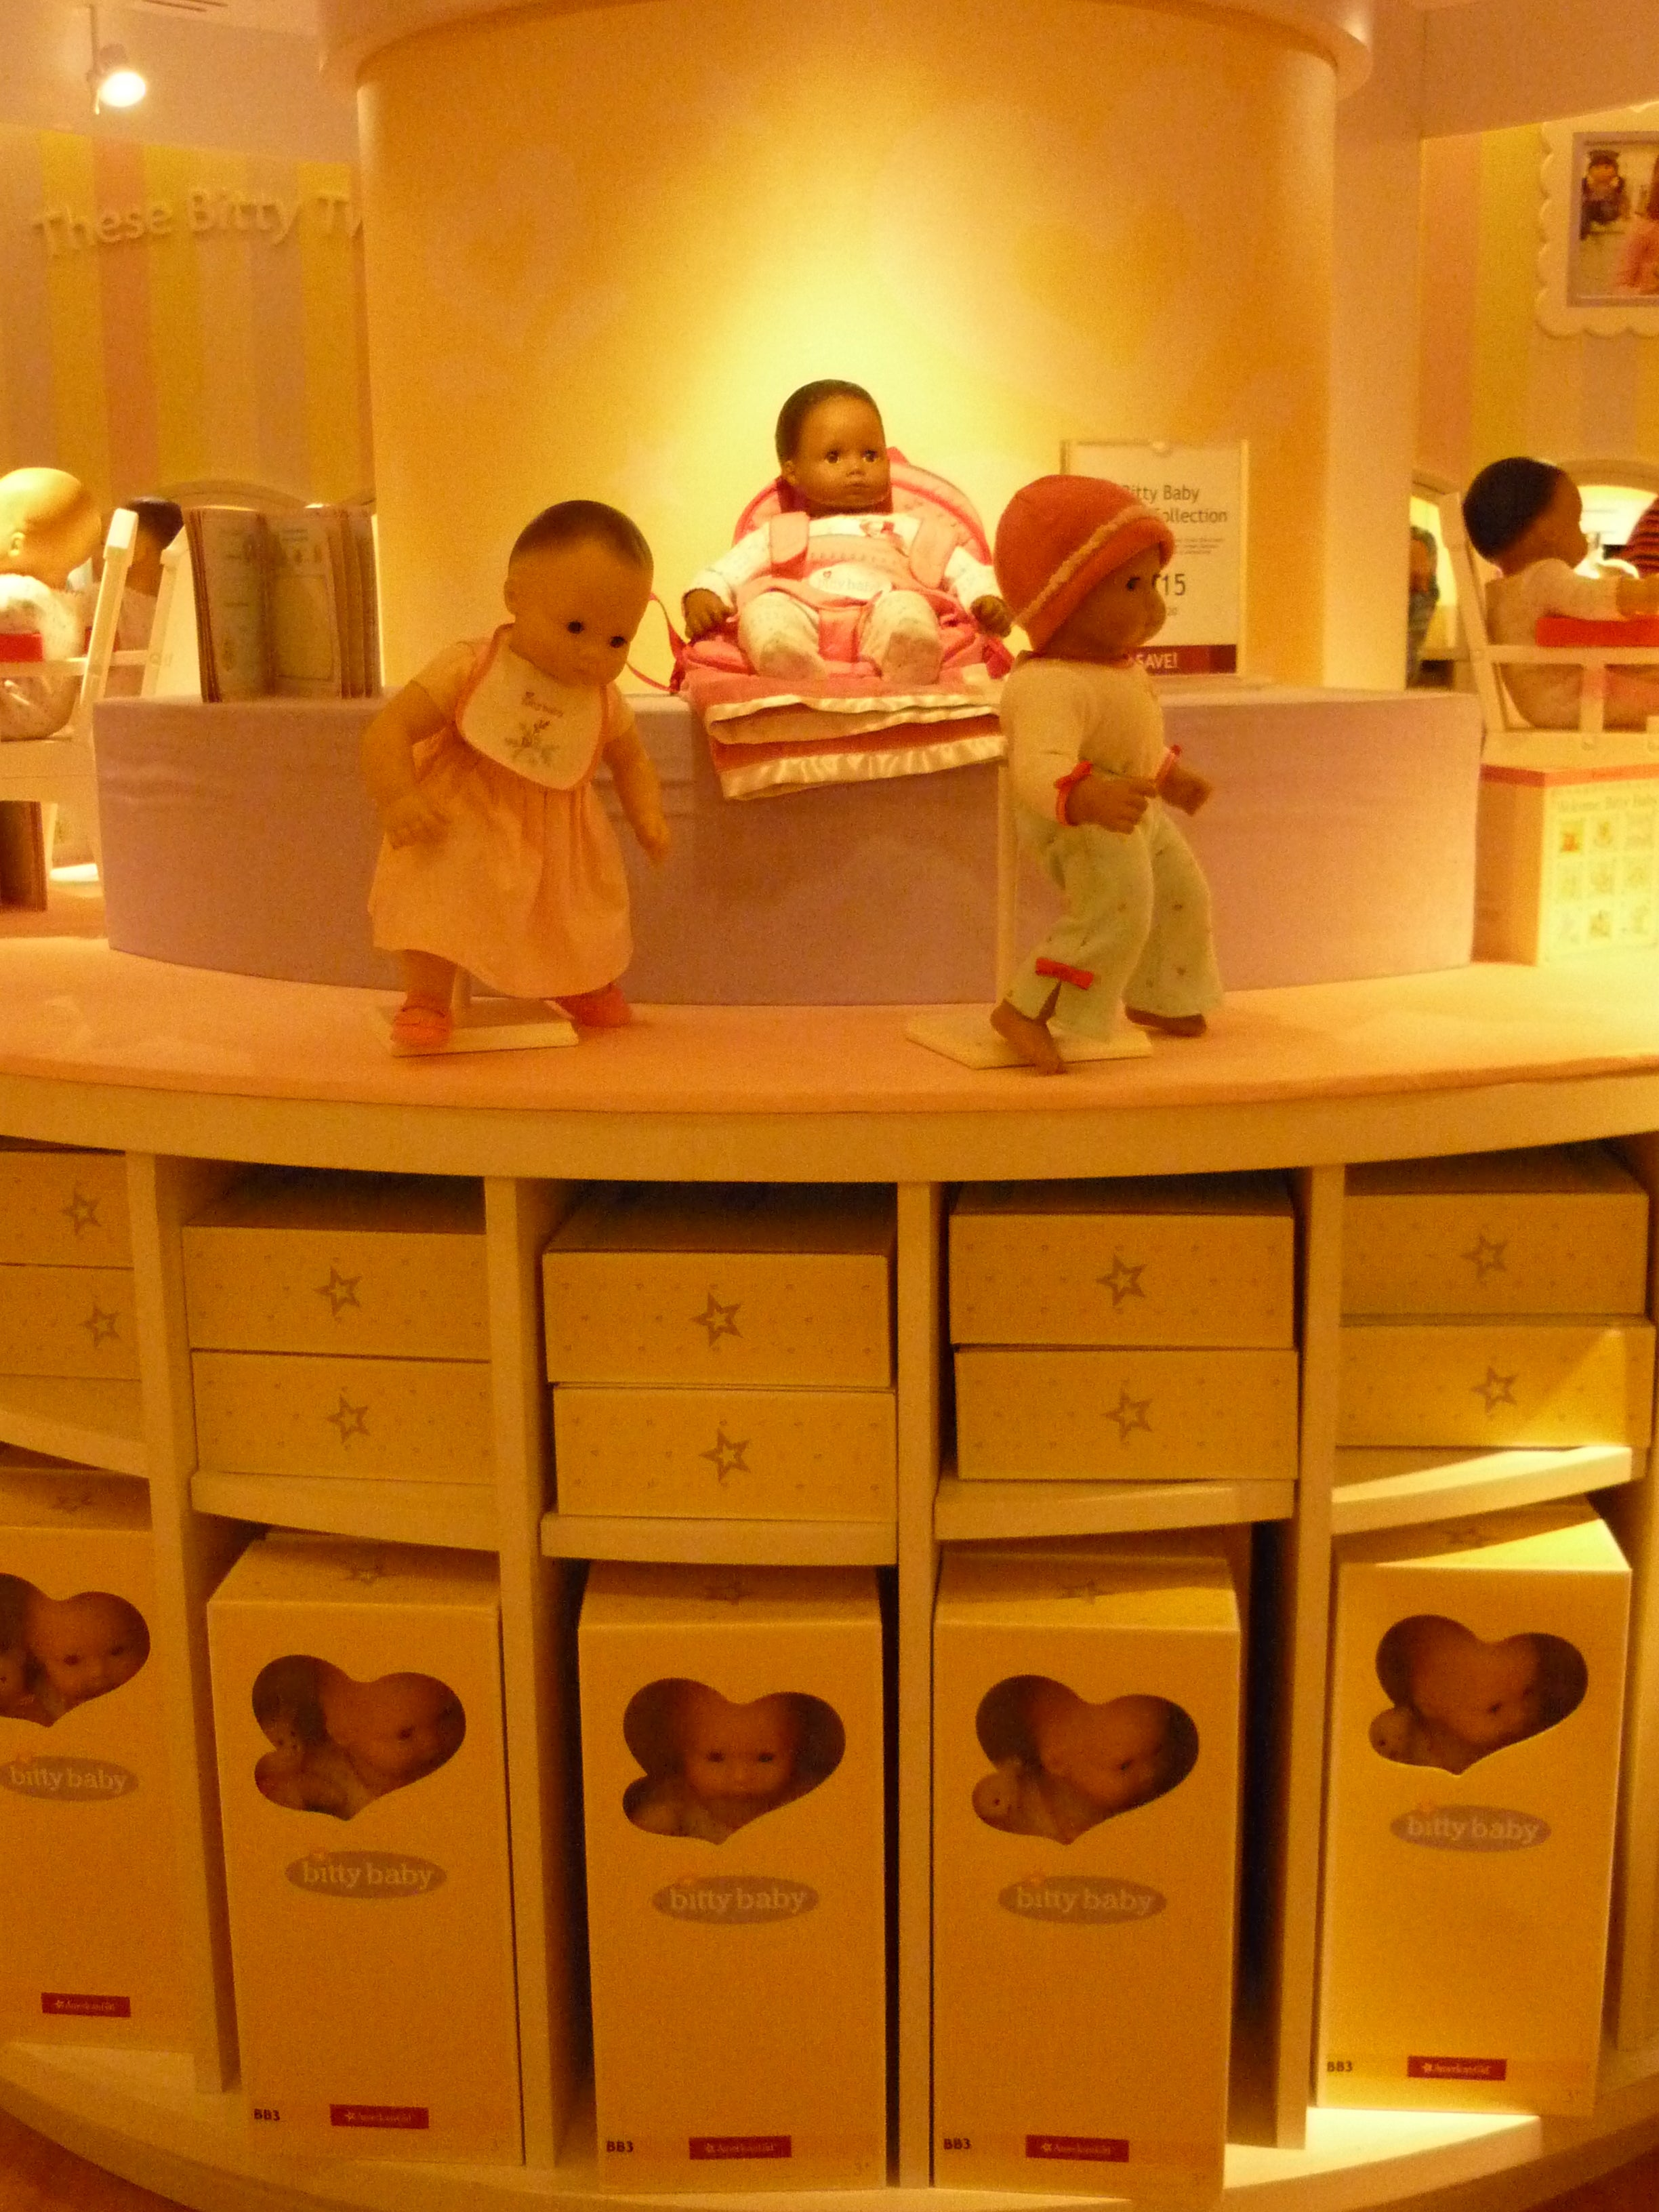 Amarillo en American Girl Place